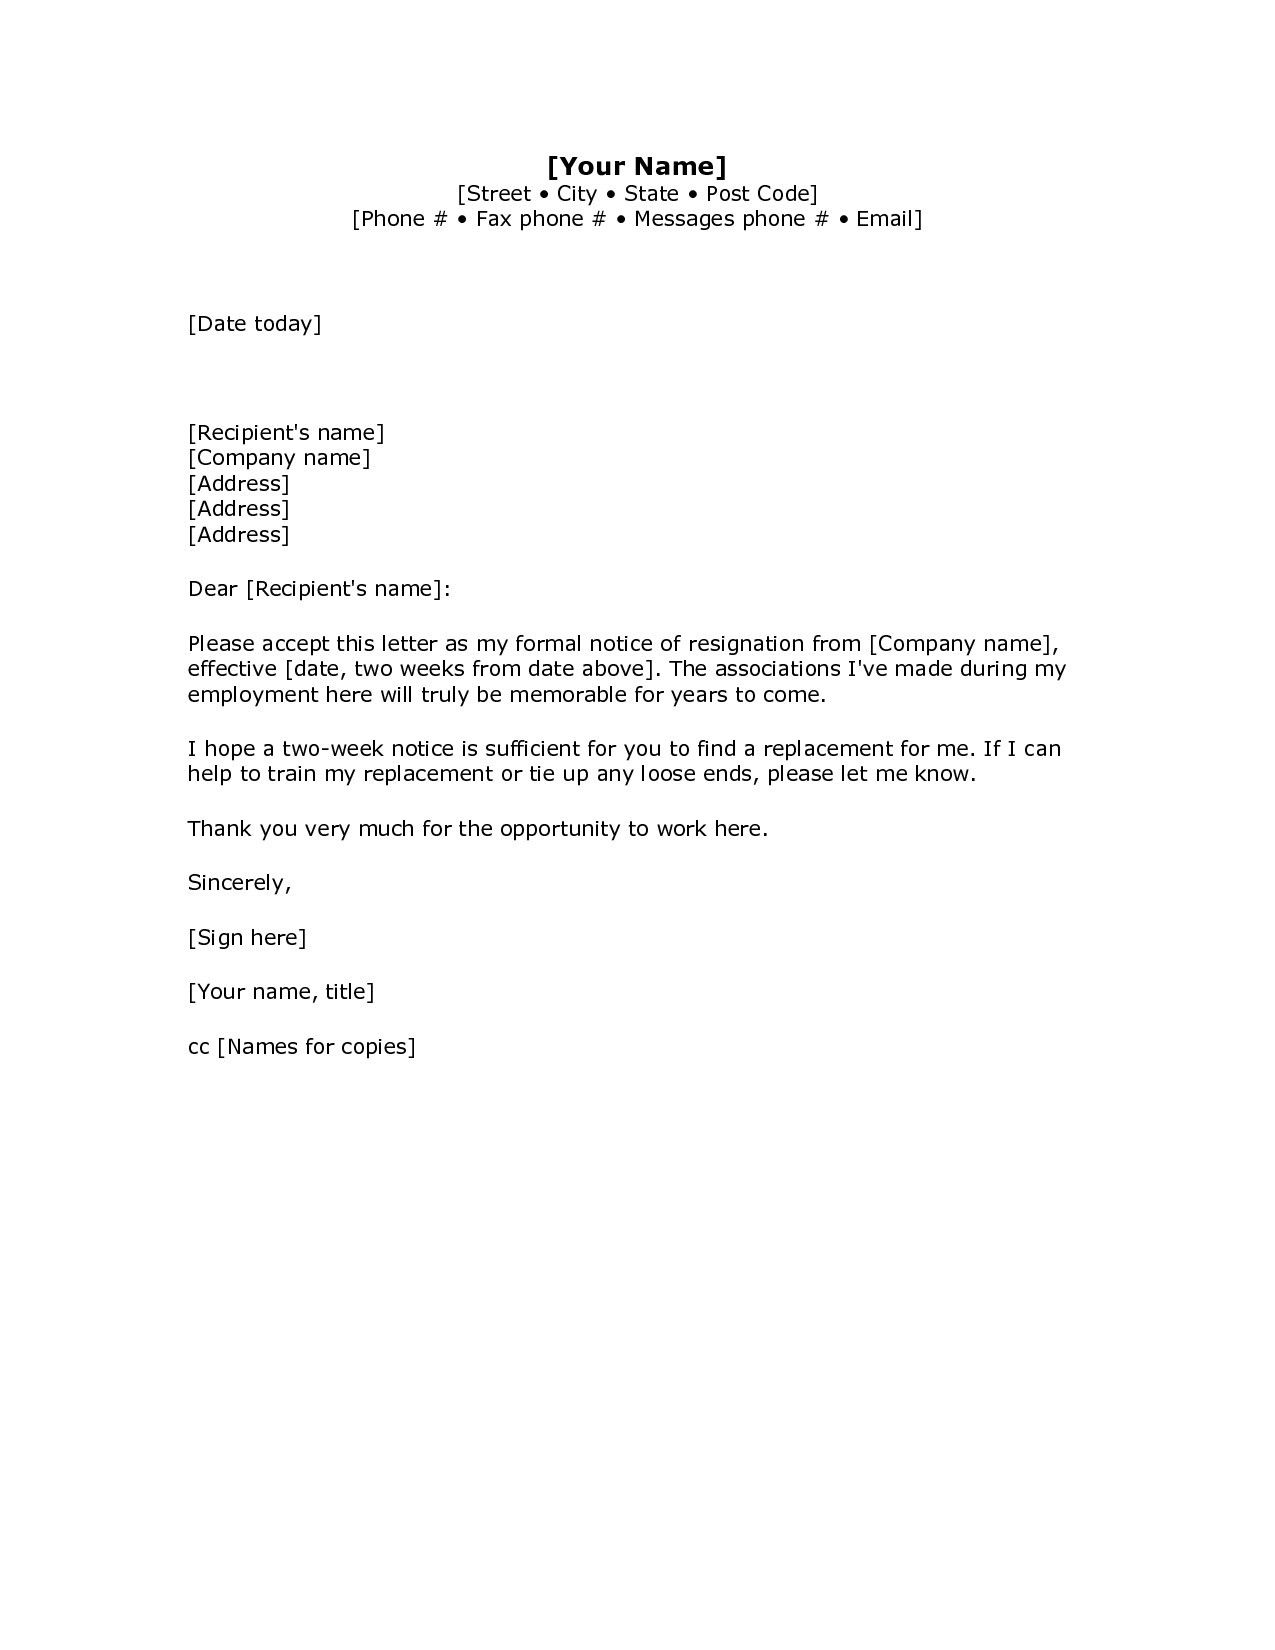 Download New Letter When Leaving A Job At Https Gprime Us Letter When Leaving A Job Resignation Letter Sample Resignation Letter Letter Template Word